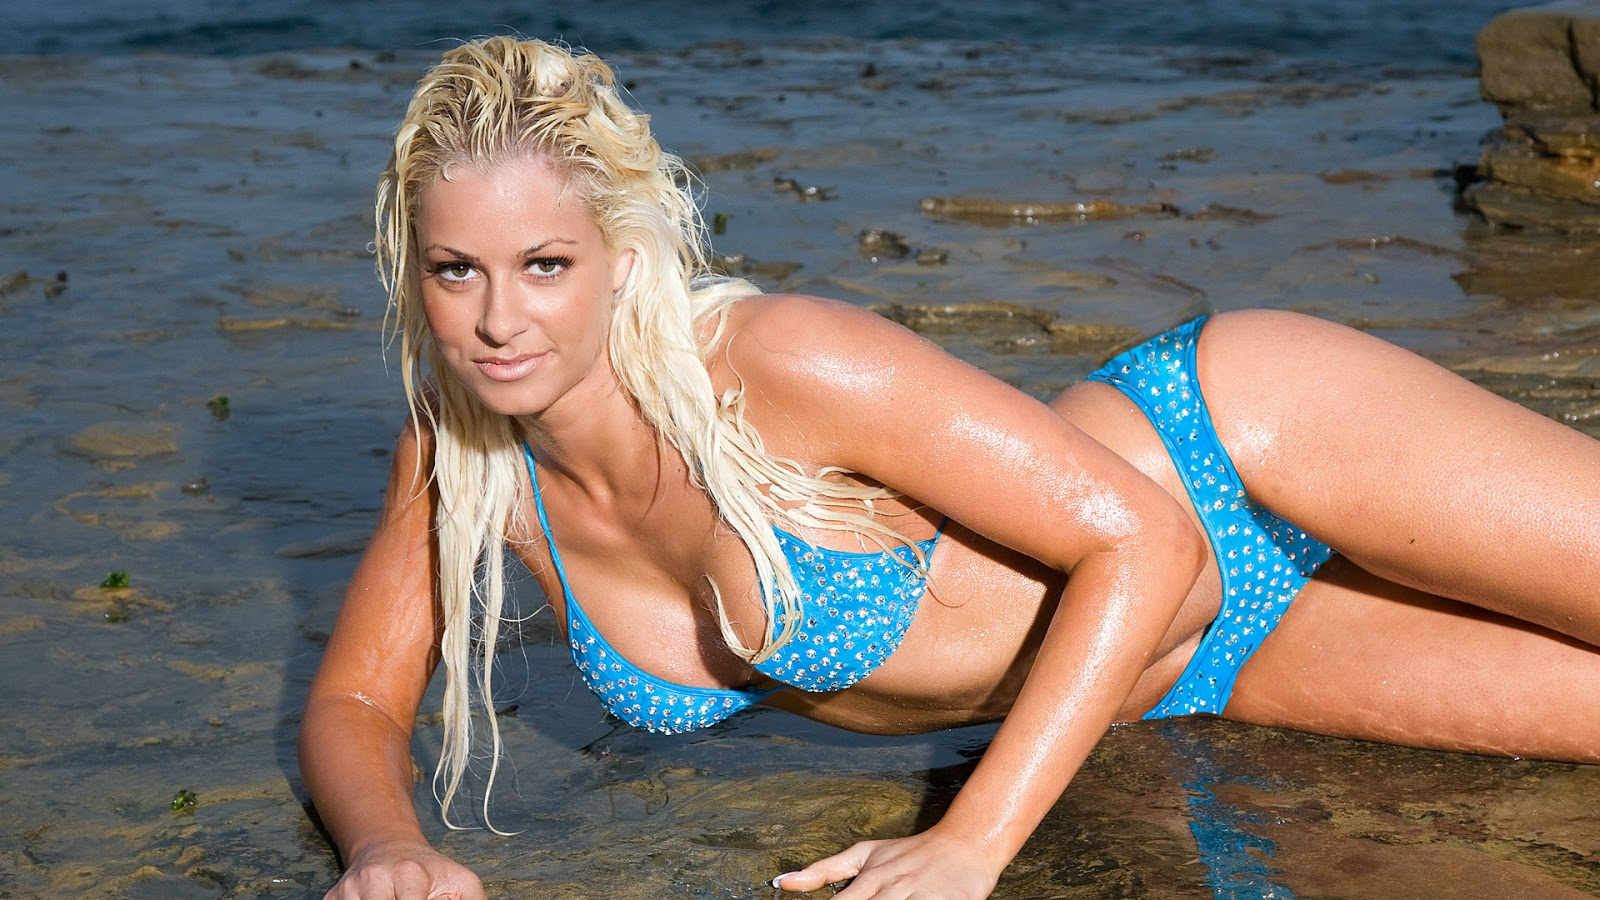 Top hottest and sexiest wwe divas ever wwe snaps for Hottest wwe diva